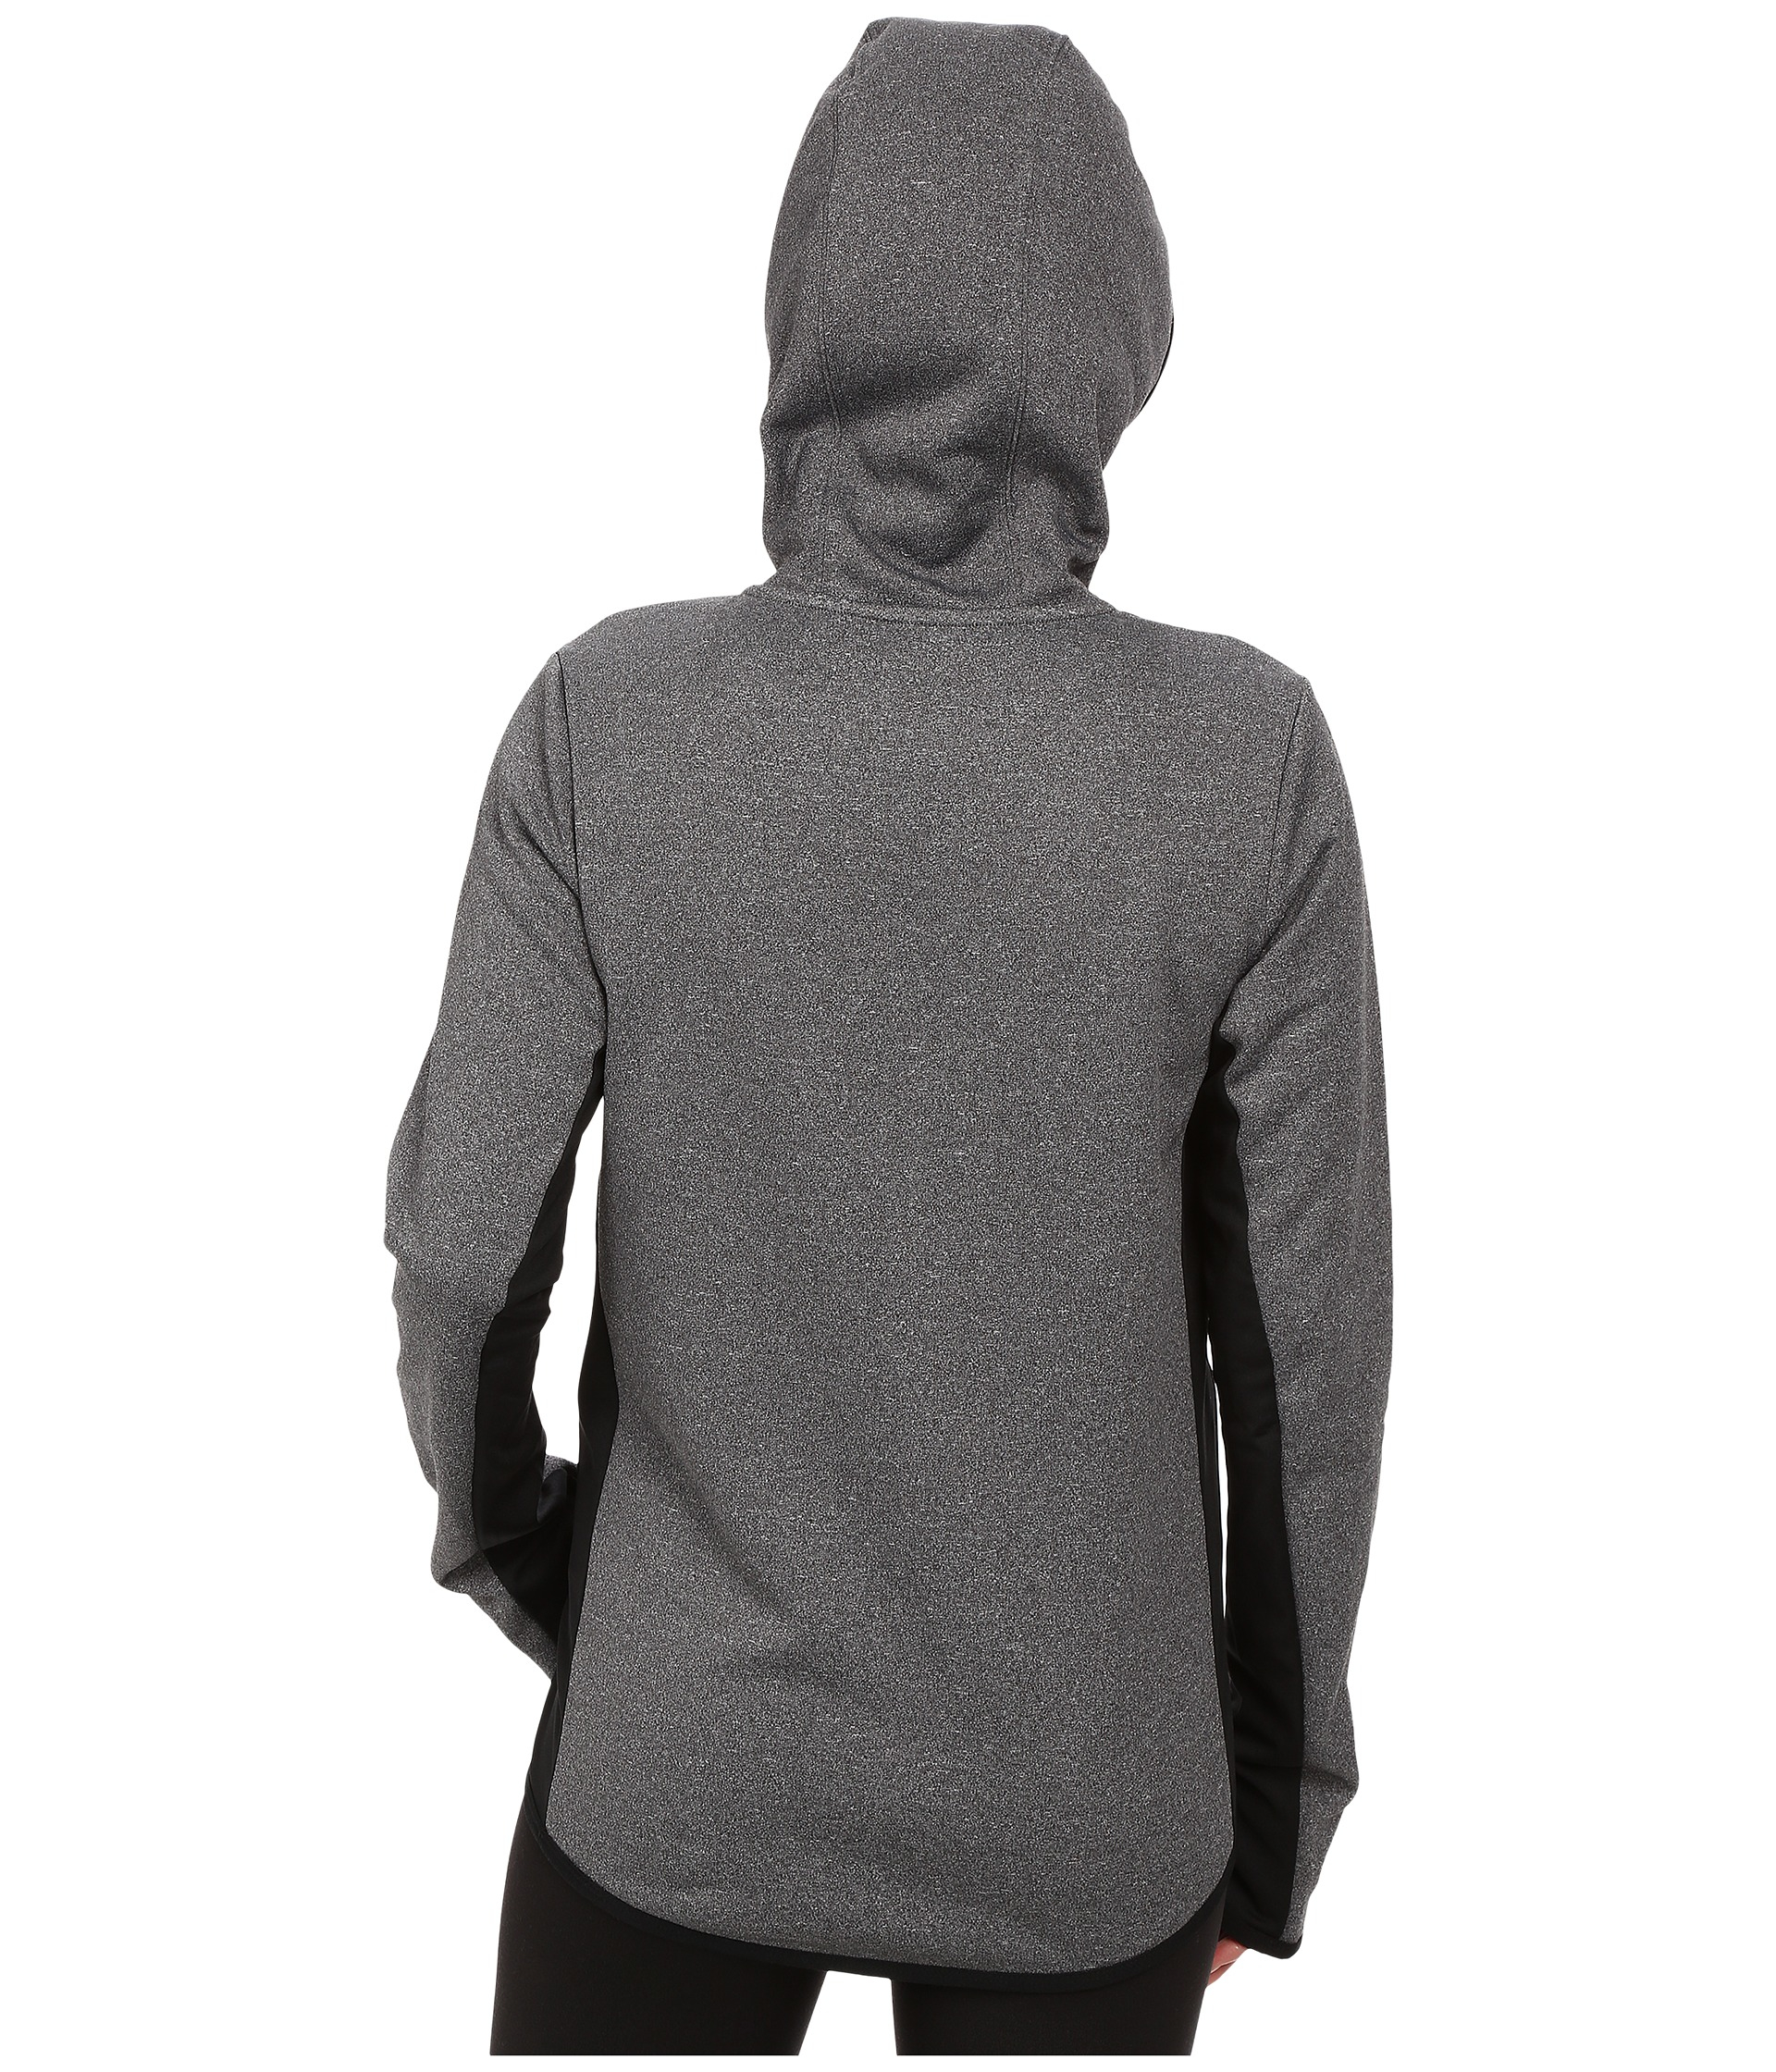 Nike All Time Tech Pullover Hoodie in Black | Lyst